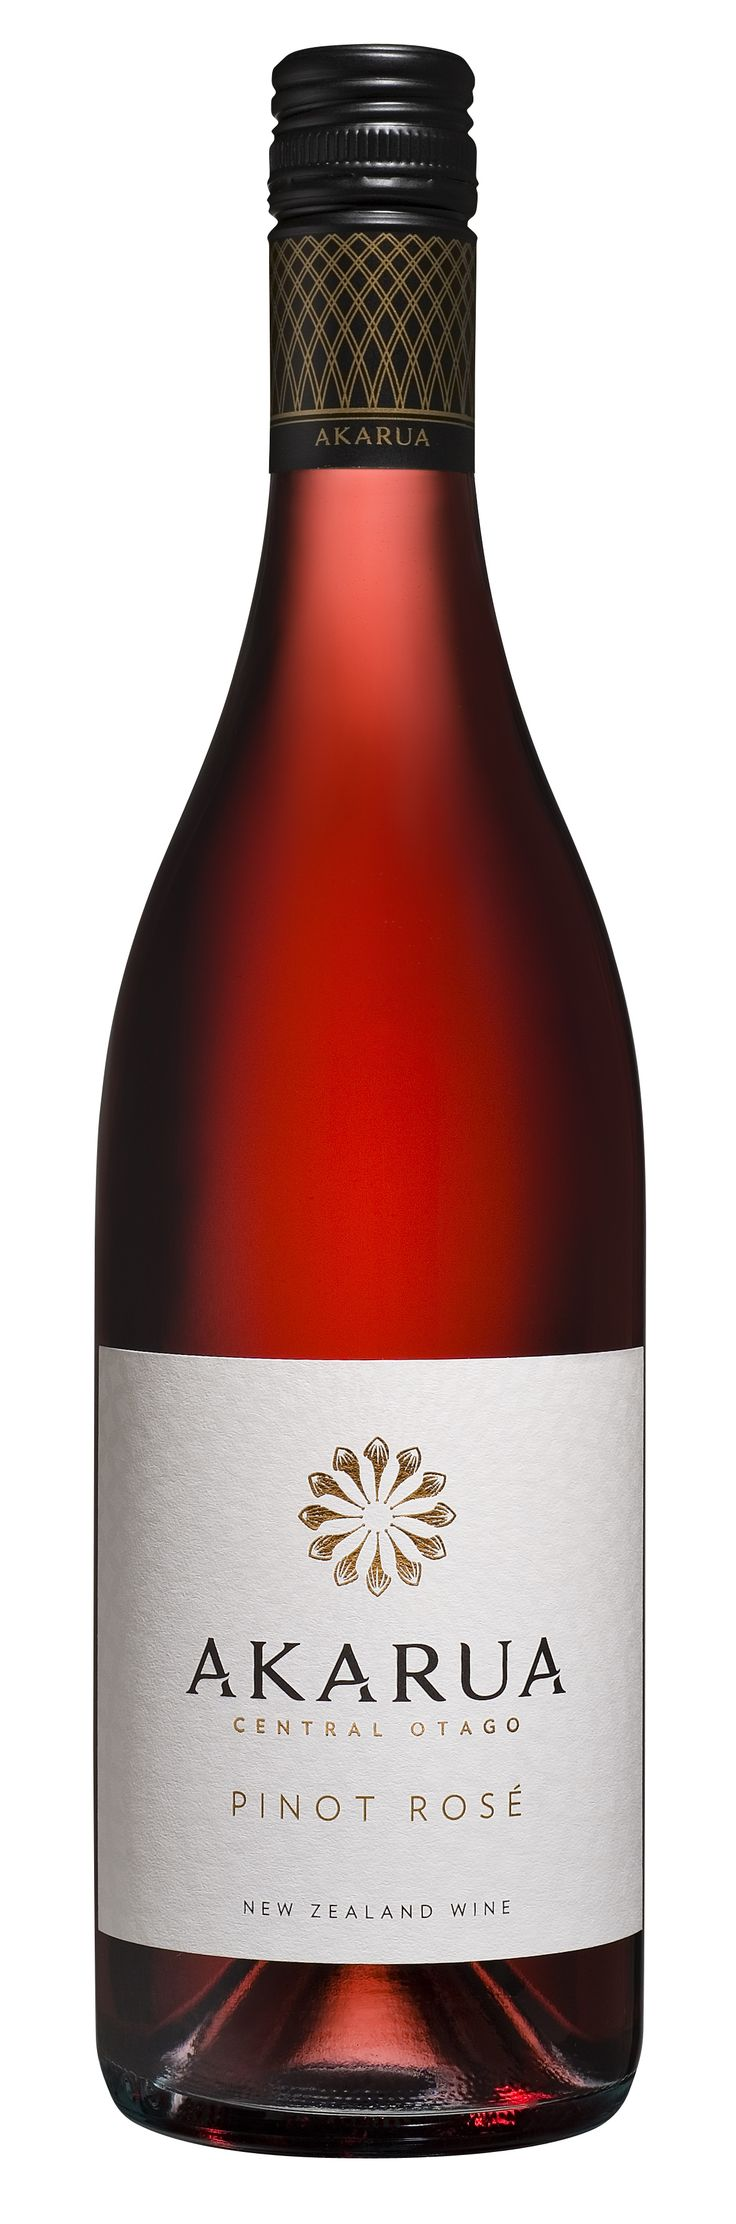 So excited to try our new 2014 Akarua Pinot Rosé which is being bottled tomorrow. Our Akarua Pinot Rosé range is quick to sell out so please contact 03-4450897 for purchases. RRP: $25.50